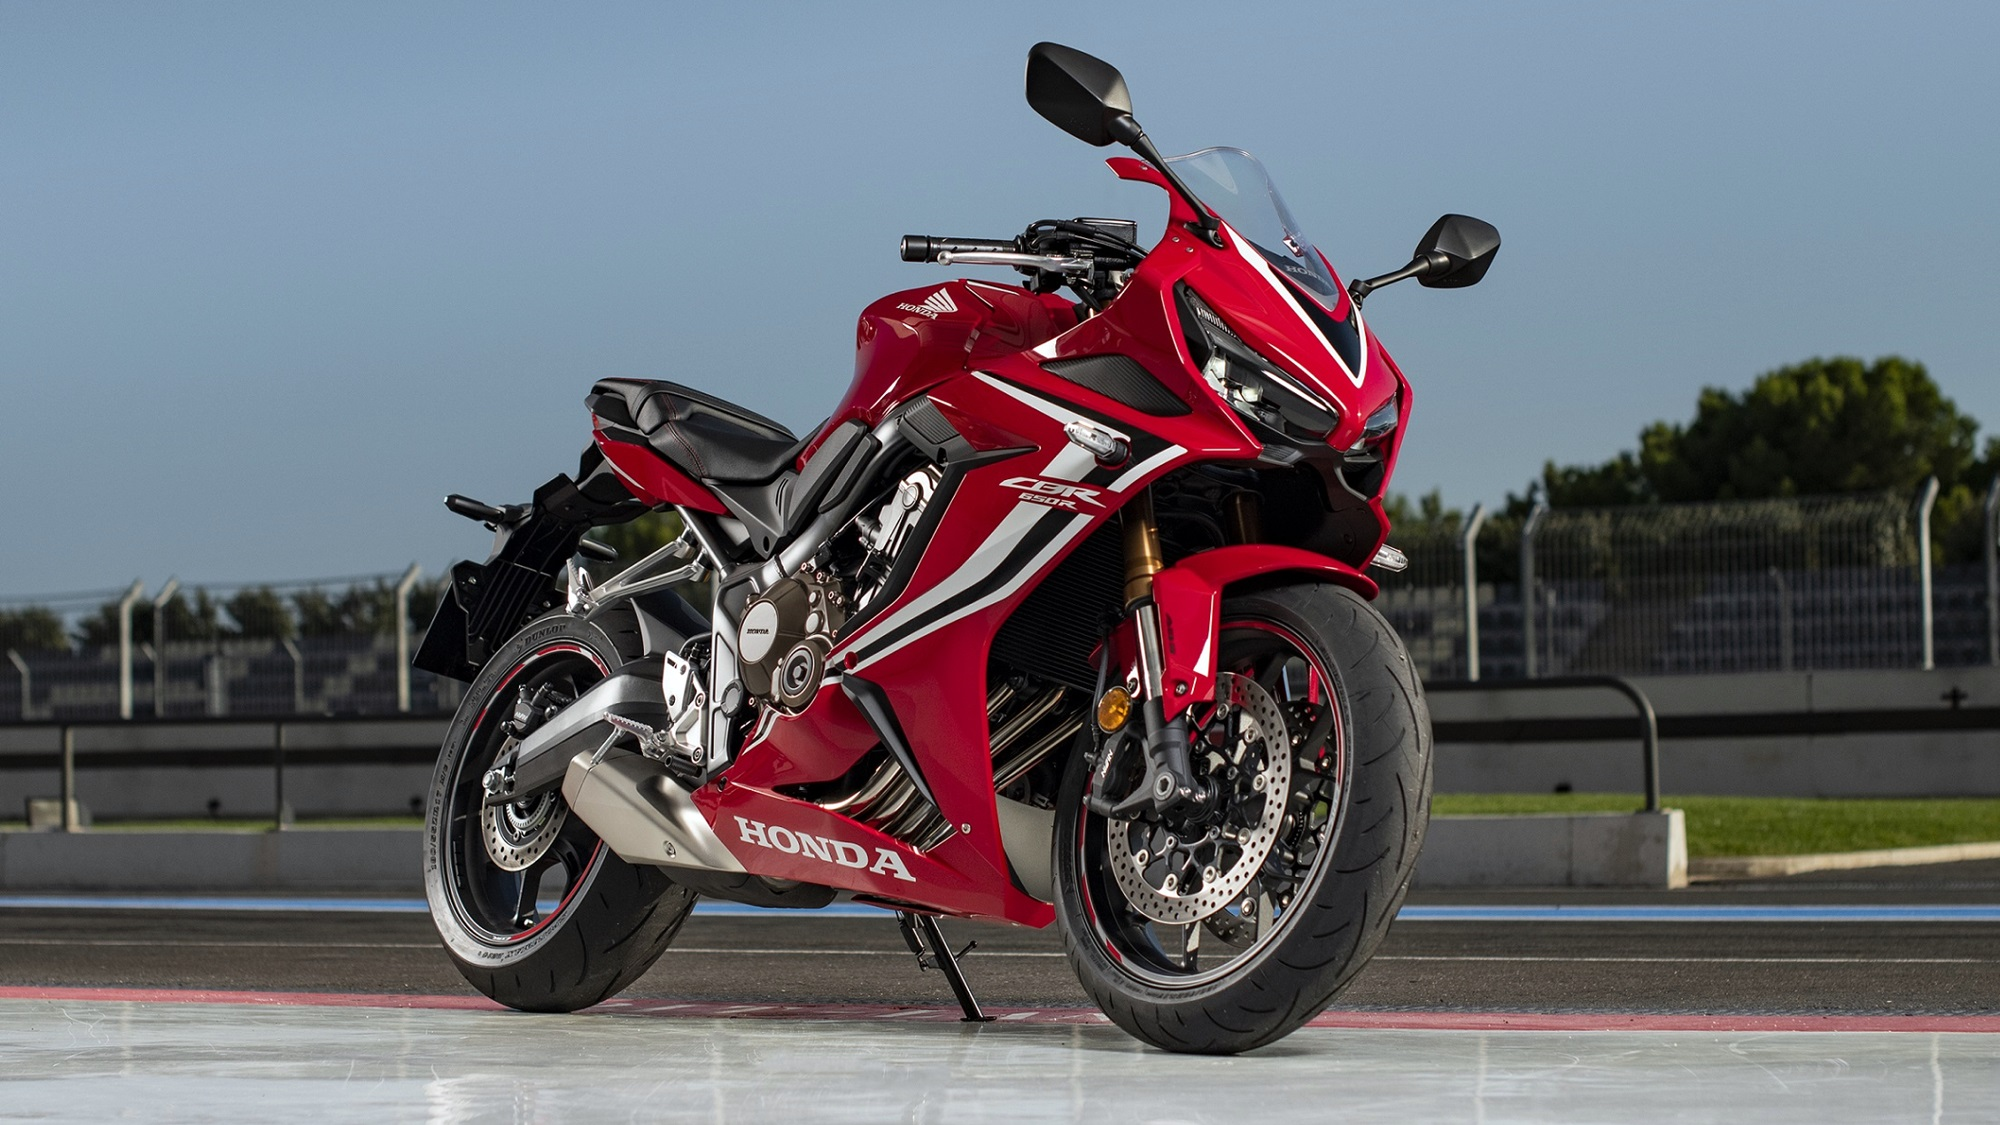 2021 Honda CBR650R launched in India